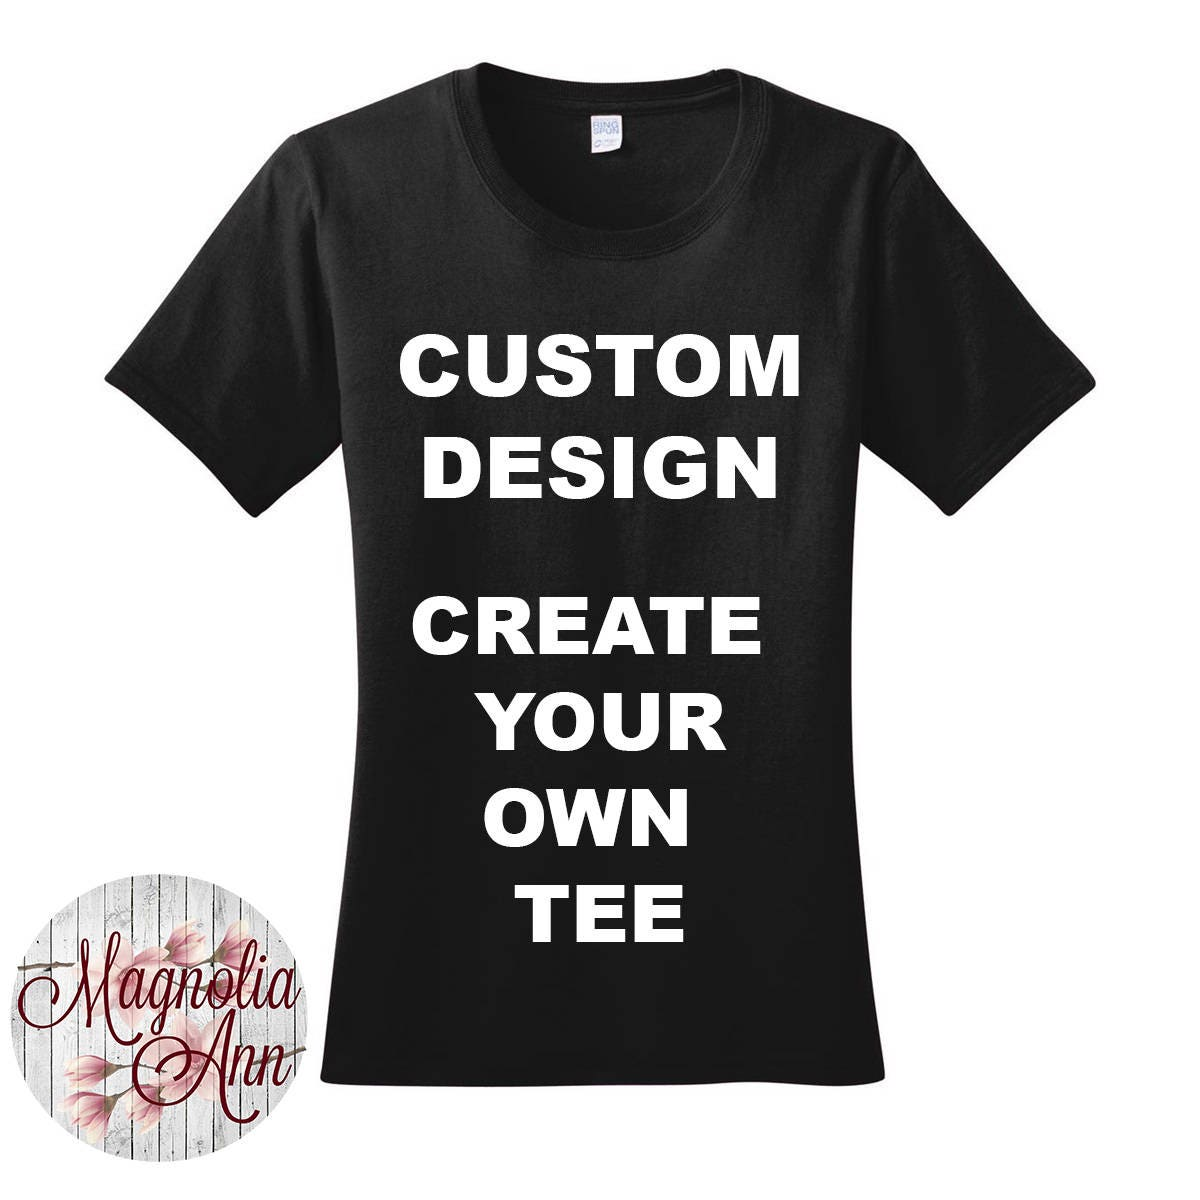 Custom Design Create Your Own Tee Women 39 S Crew Neck T: build your own t shirts